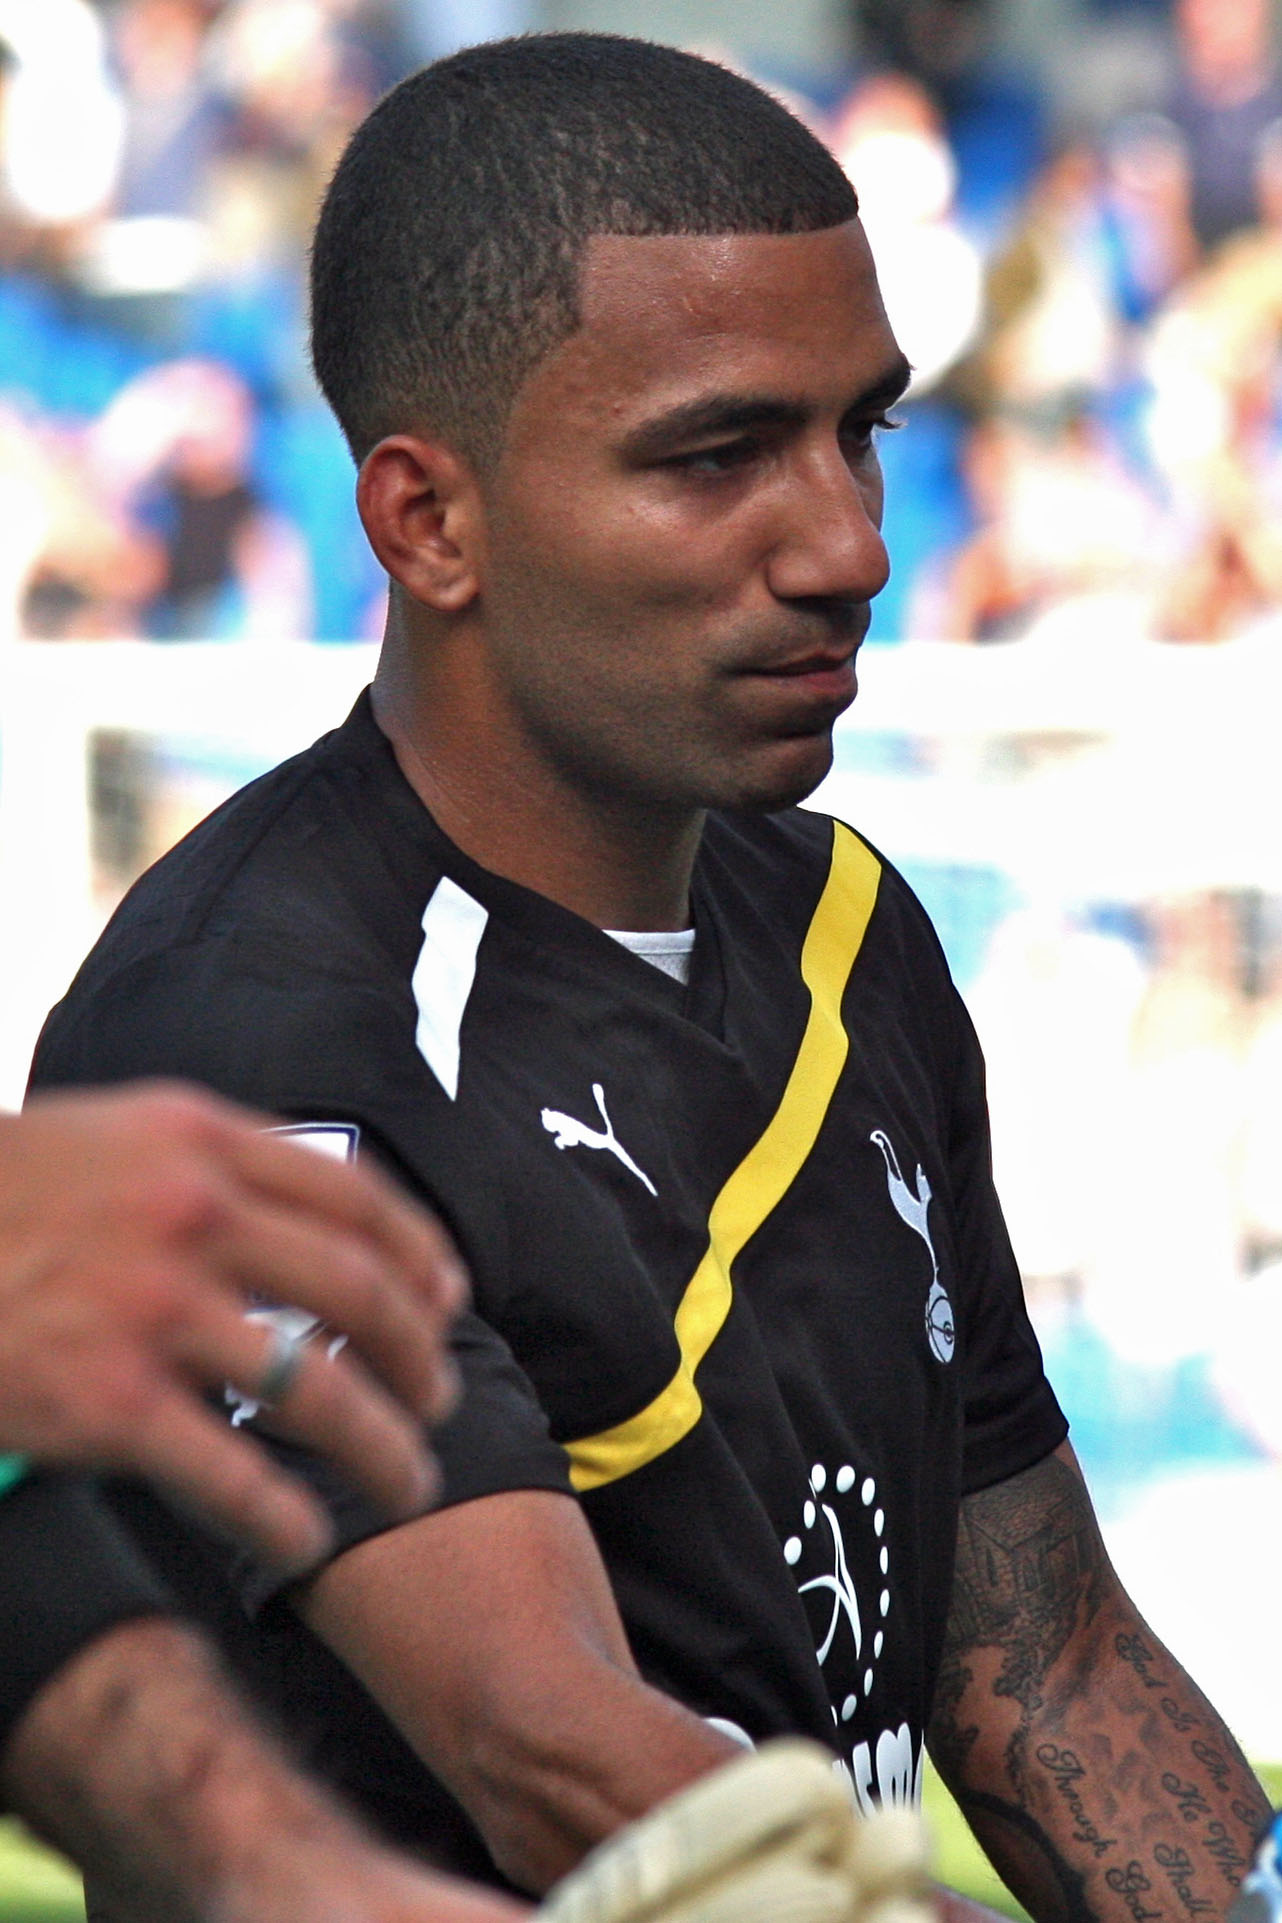 The 31-year old son of father (?) and mother(?) Aaron Lennon in 2018 photo. Aaron Lennon earned a 4.5 million dollar salary - leaving the net worth at 17.7 million in 2018